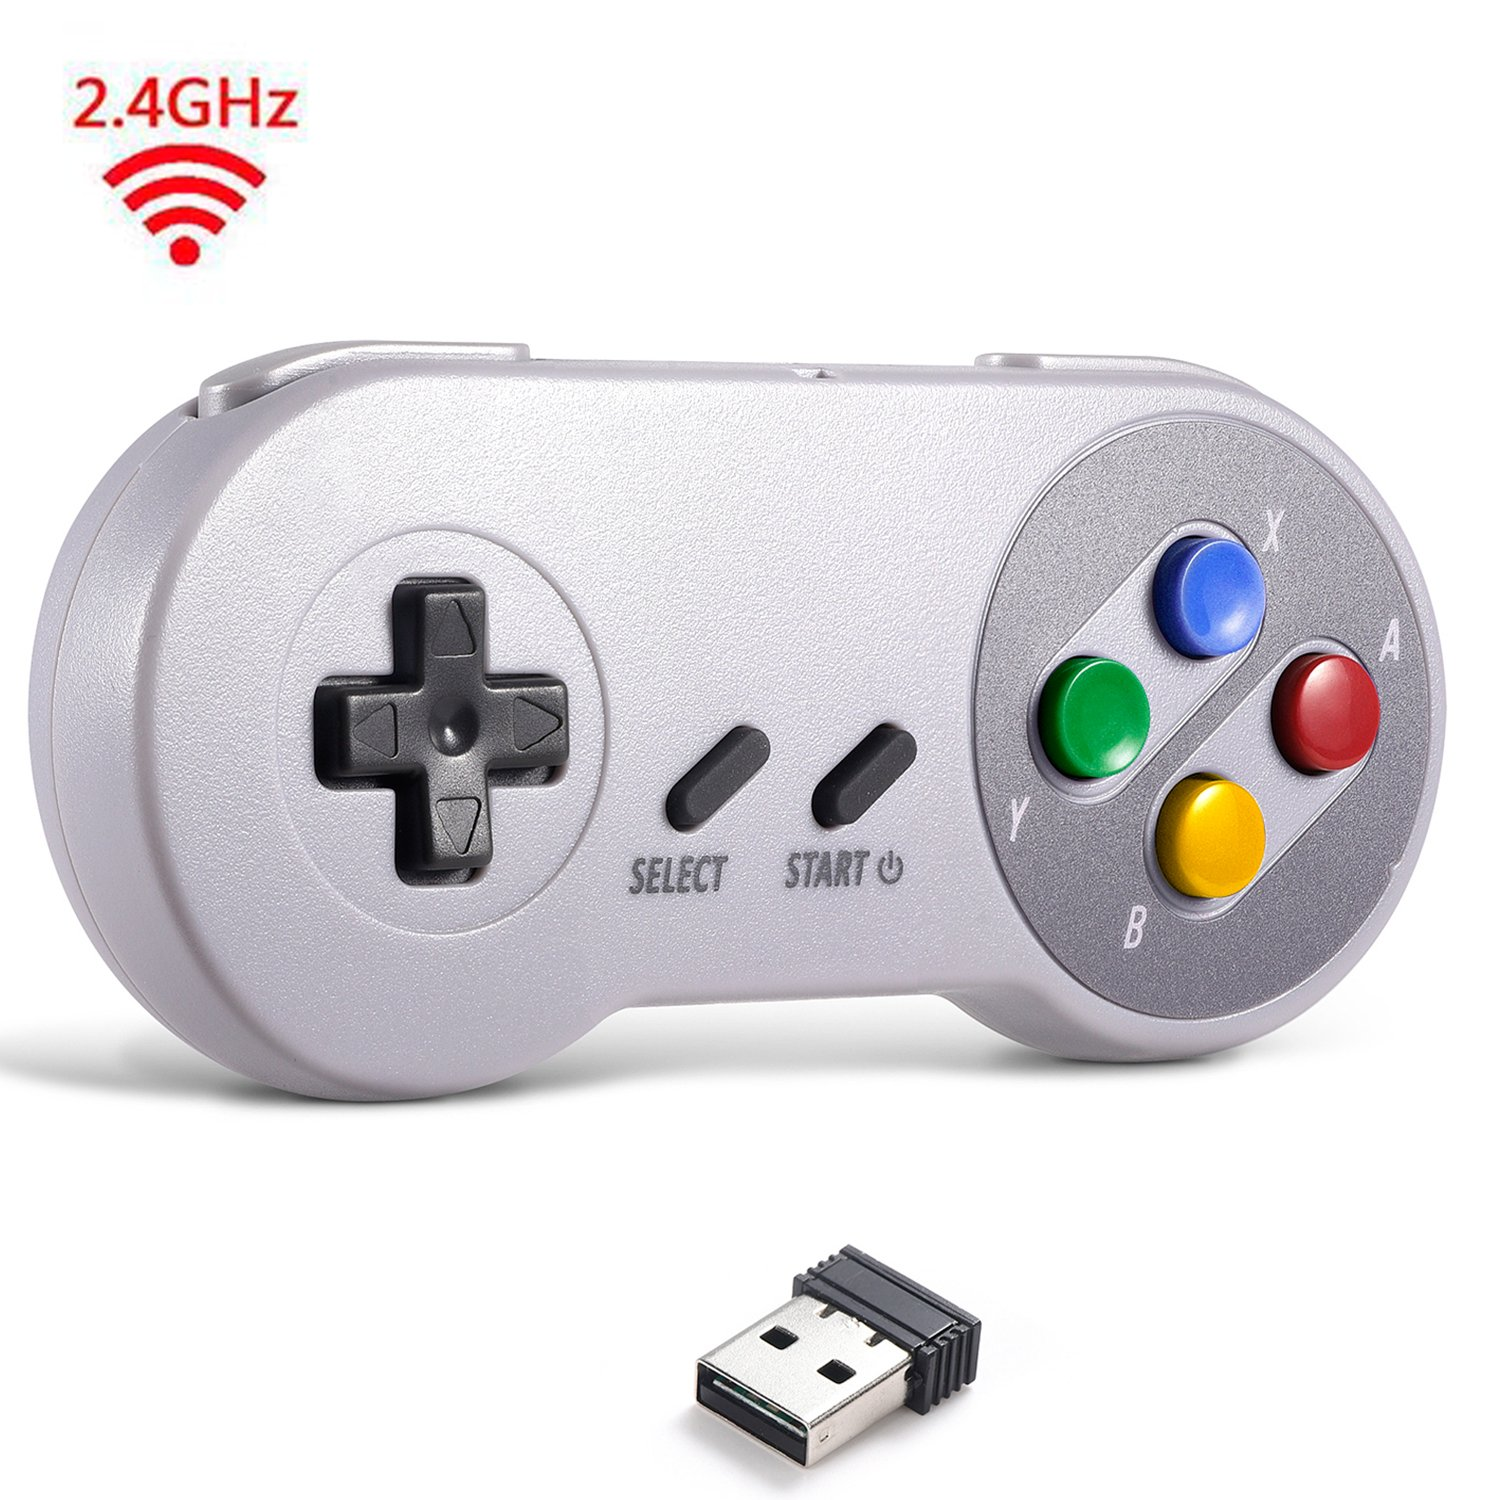 2.4 GHz Wireless USB Controller Compatible with Super Famicom Games, iNNEXT SNES Retro USB Classic Controller Joypad Joystick for Windows PC MAC Linux Genesis (Multi-Colored Keys)